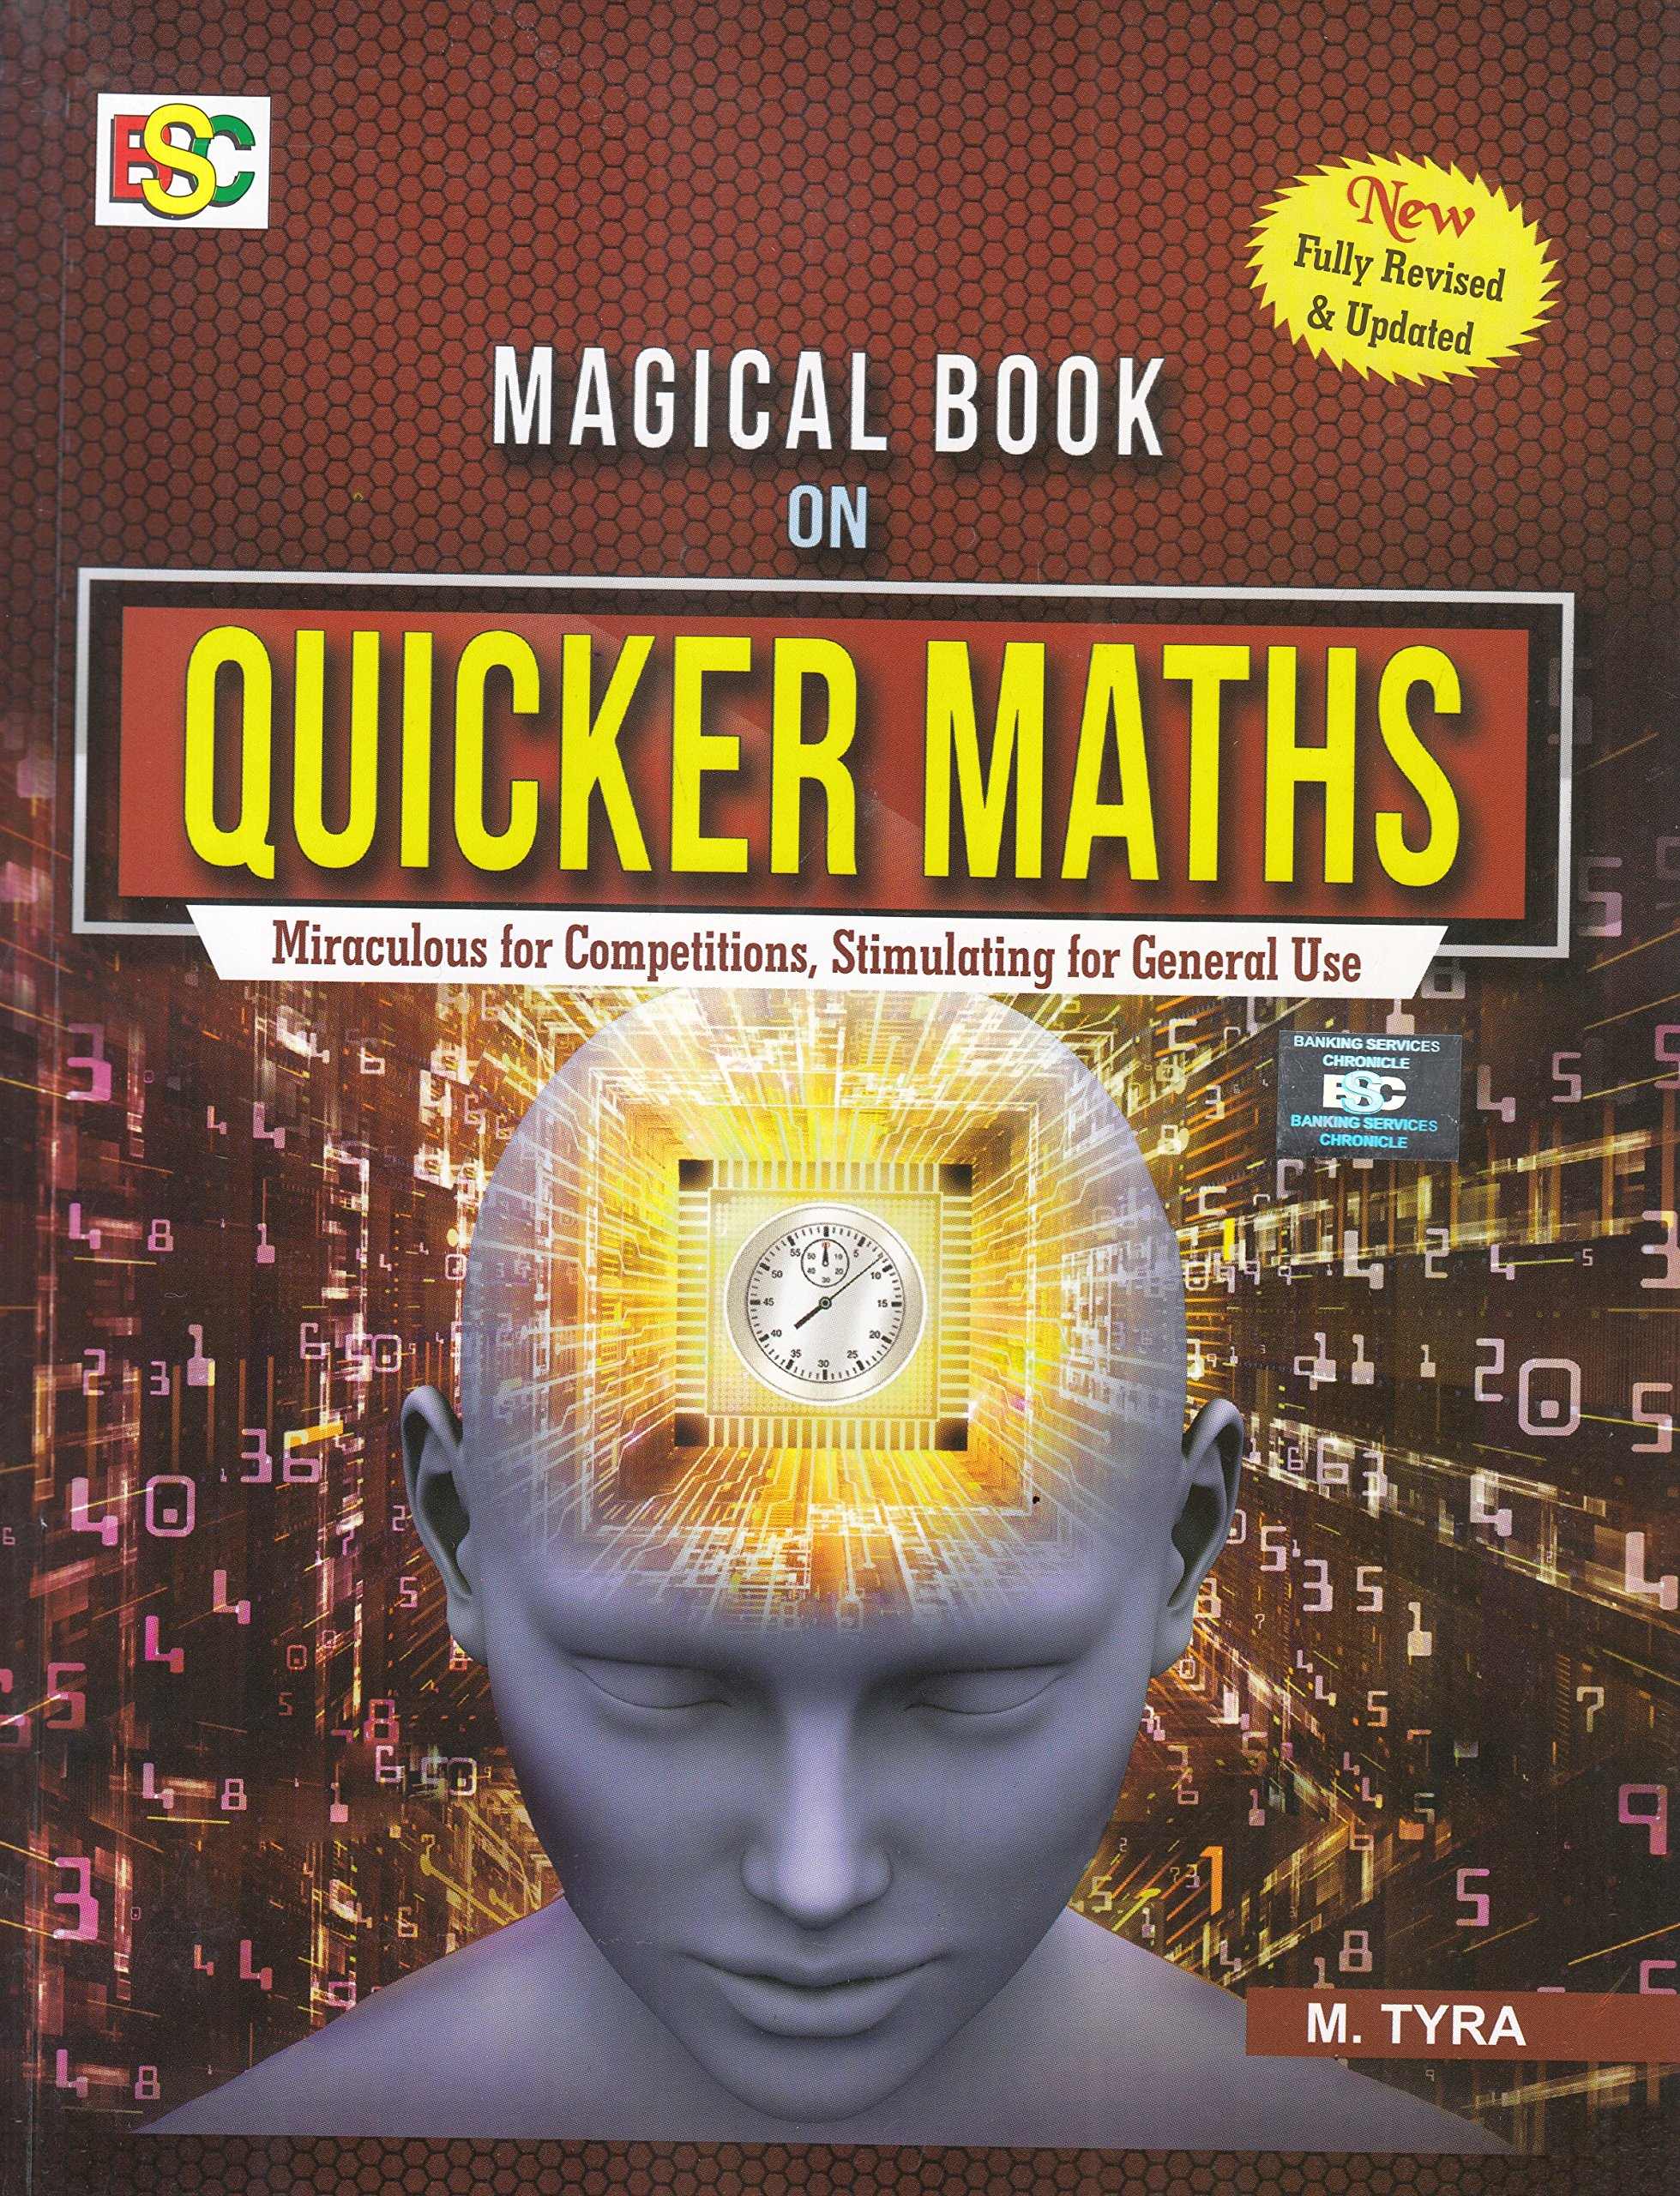 Buy magical books on quicker maths 2018 2019 session by m tyra buy magical books on quicker maths 2018 2019 session by m tyra book online at low prices in india magical books on quicker maths 2018 2019 session by fandeluxe Image collections